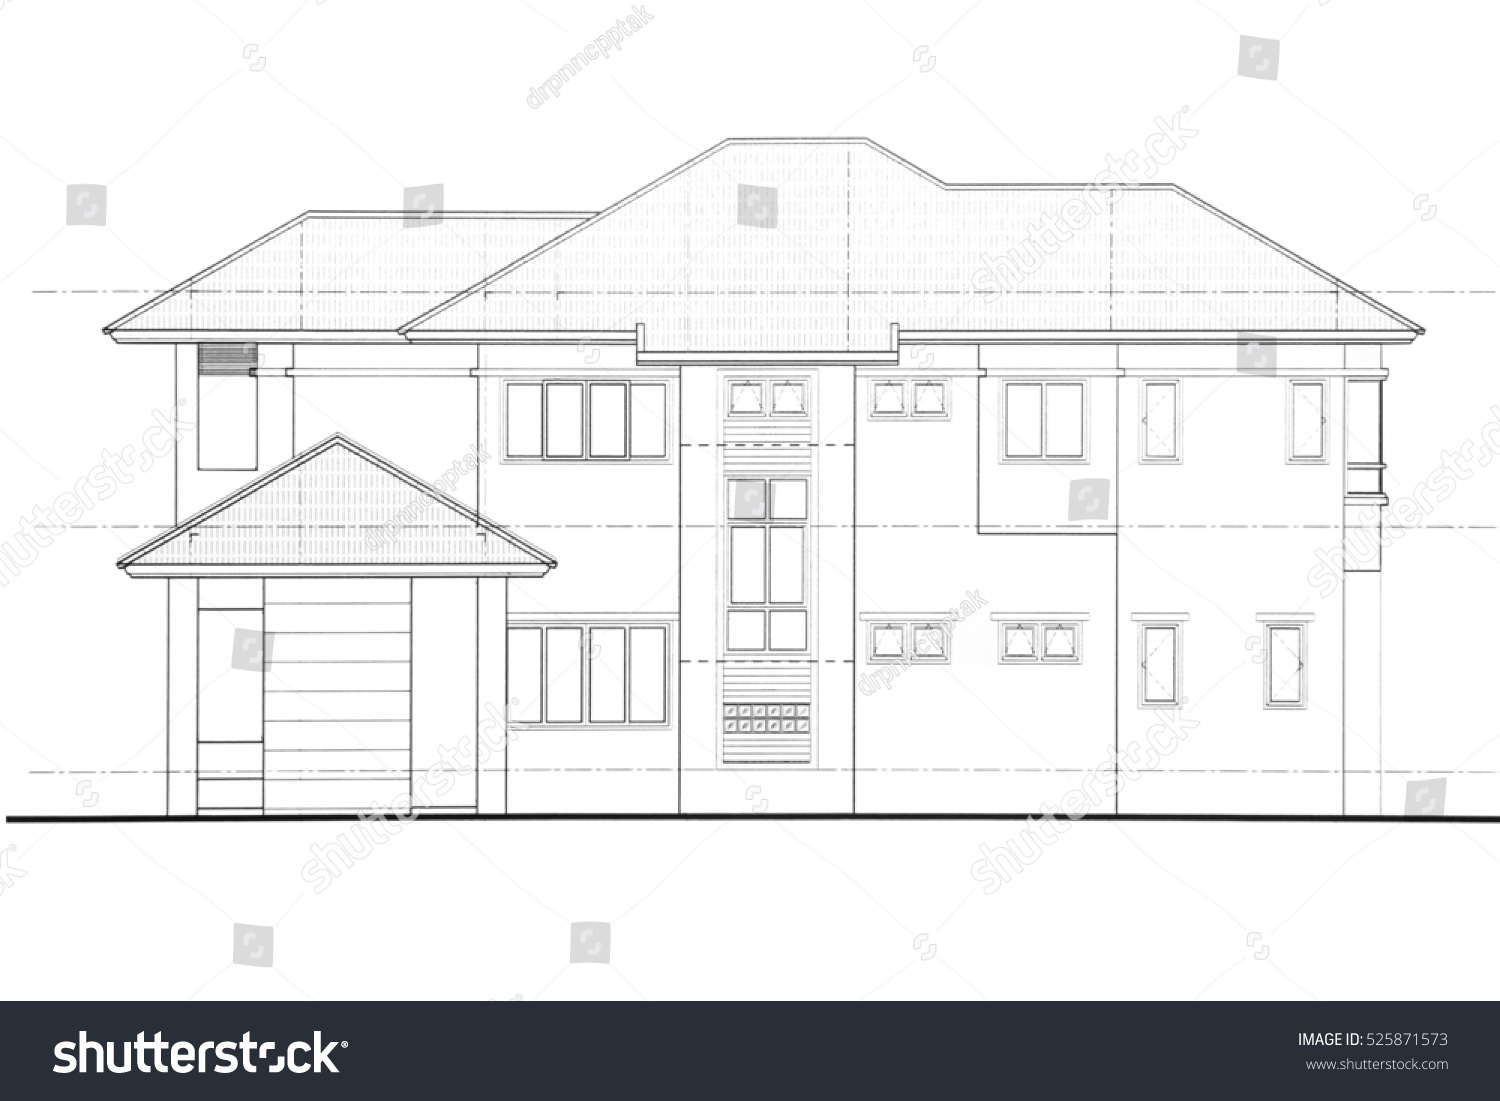 House plan side view stock illustration 525871573 for Side view house plans